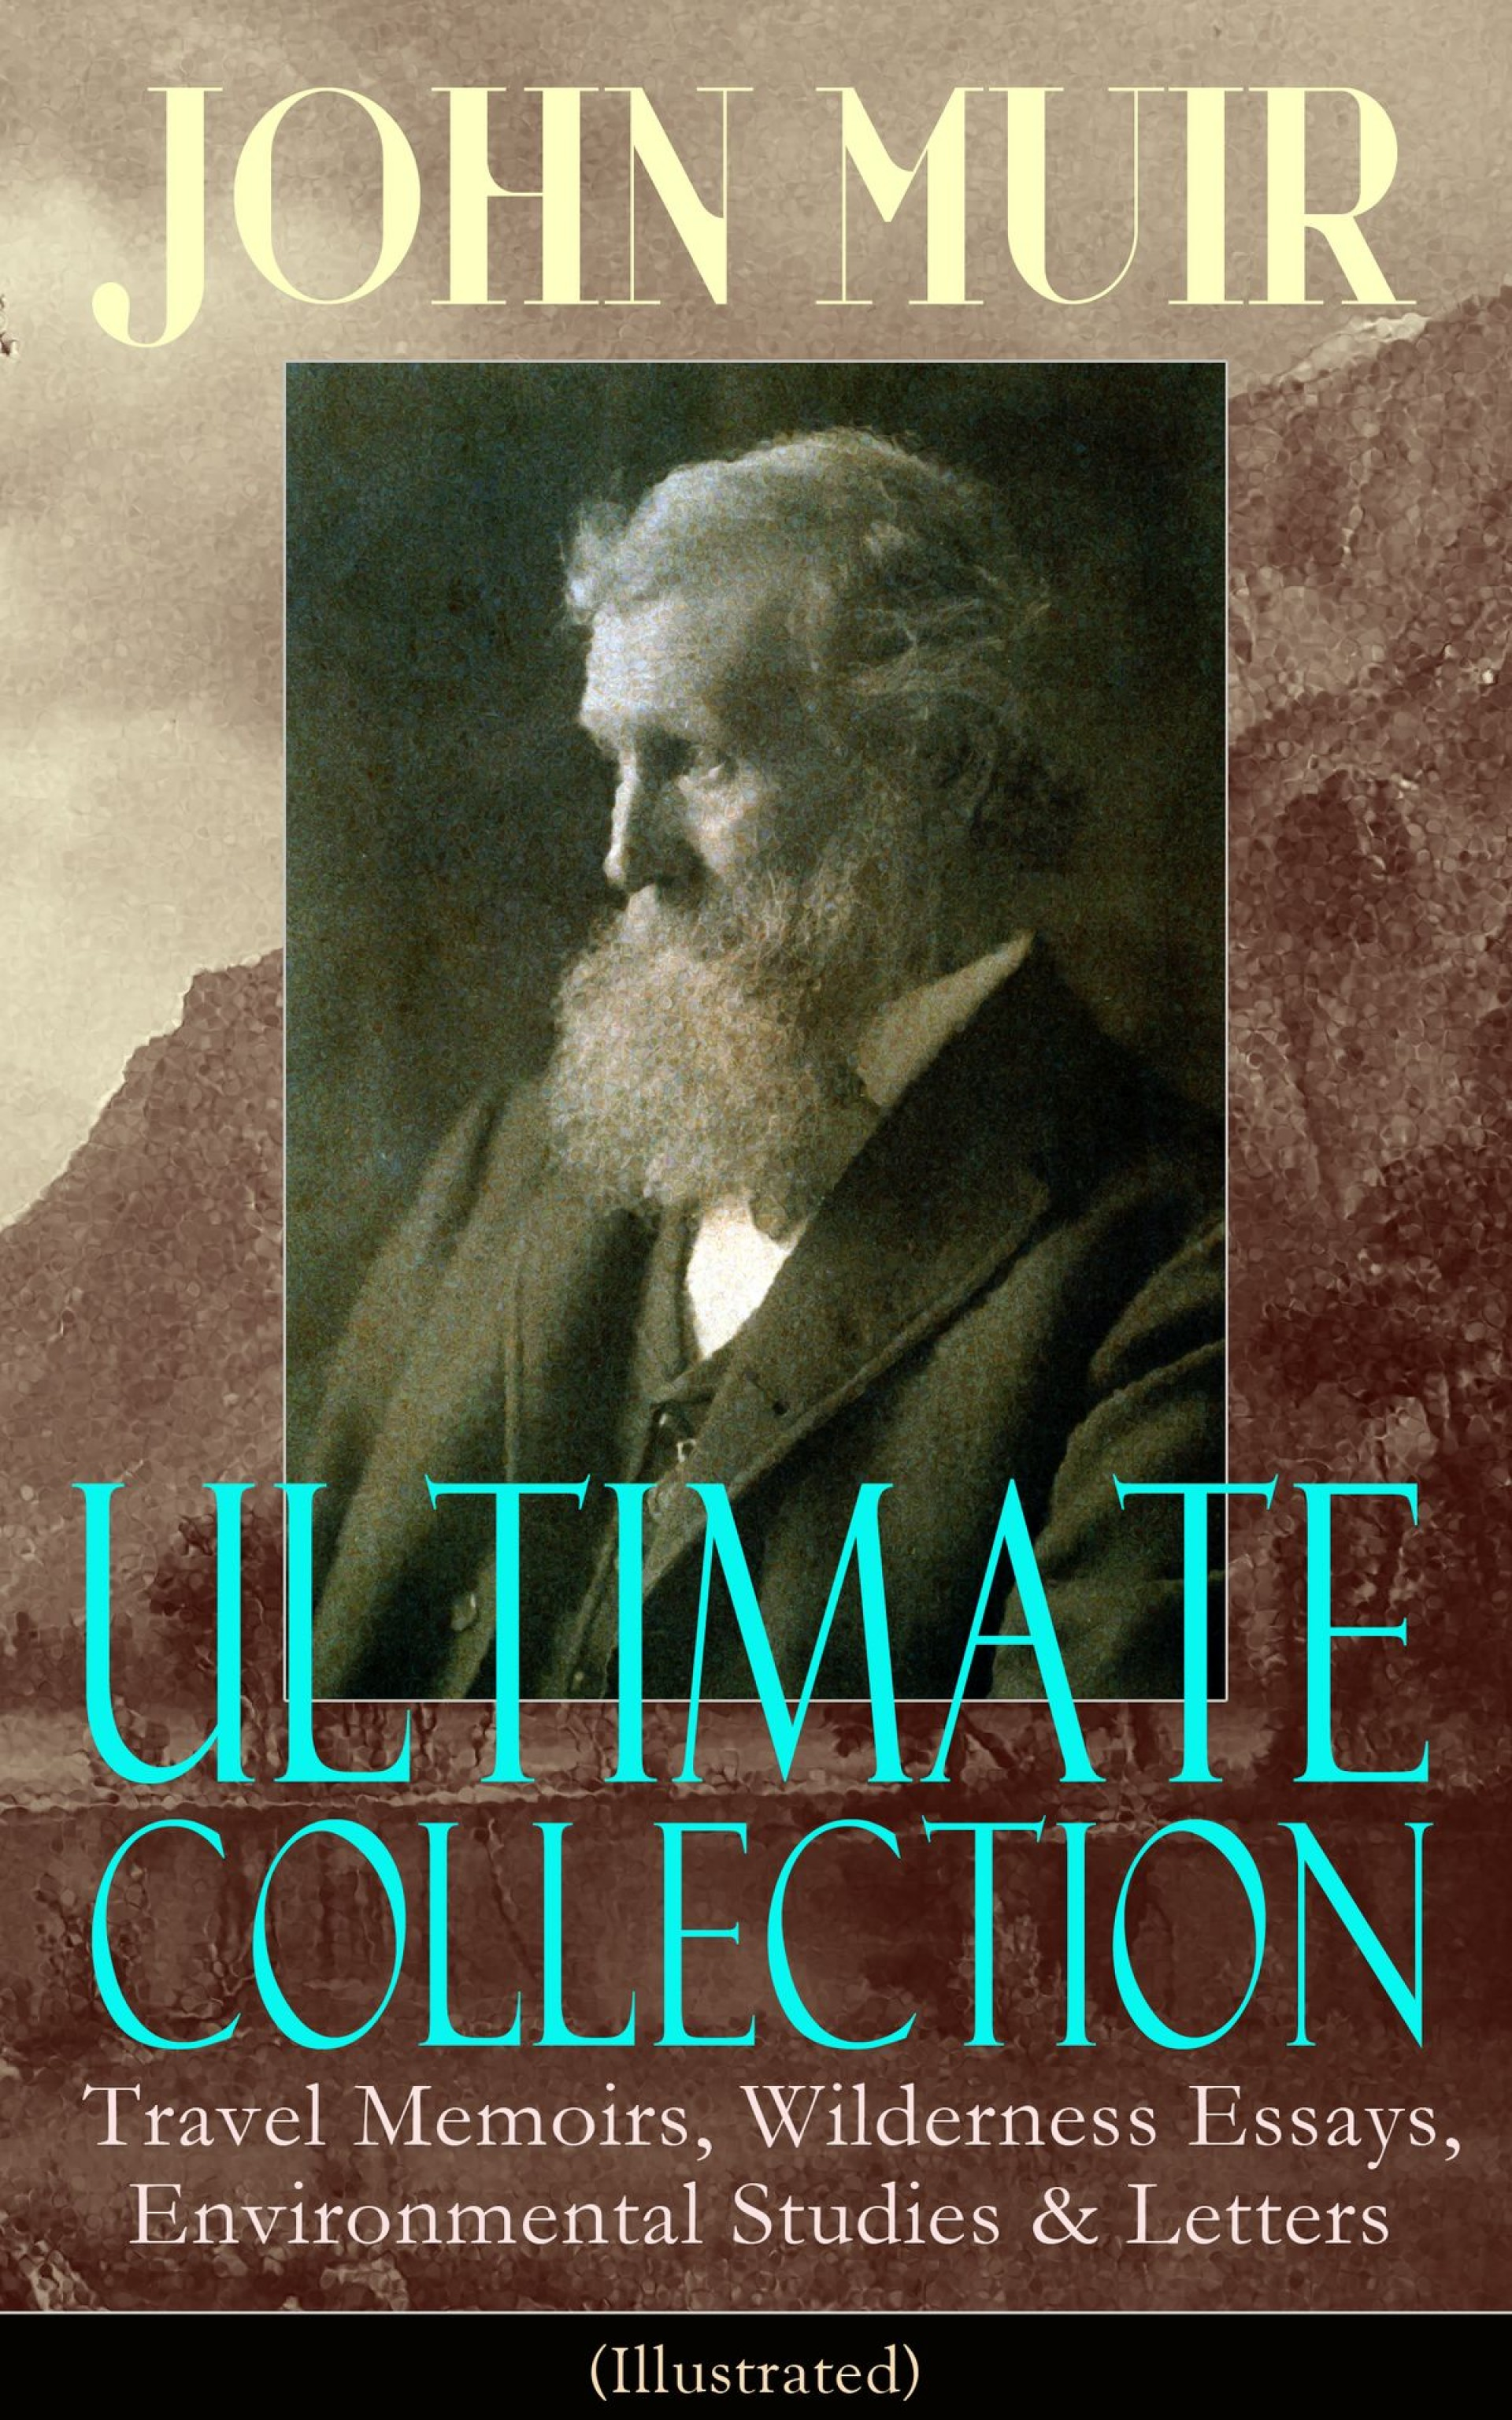 014 Essay Example John Muir Ultimate Collection Travel Memoirs Wilderness Essays Environmental Studies Letters Best Quotes Pdf 1920